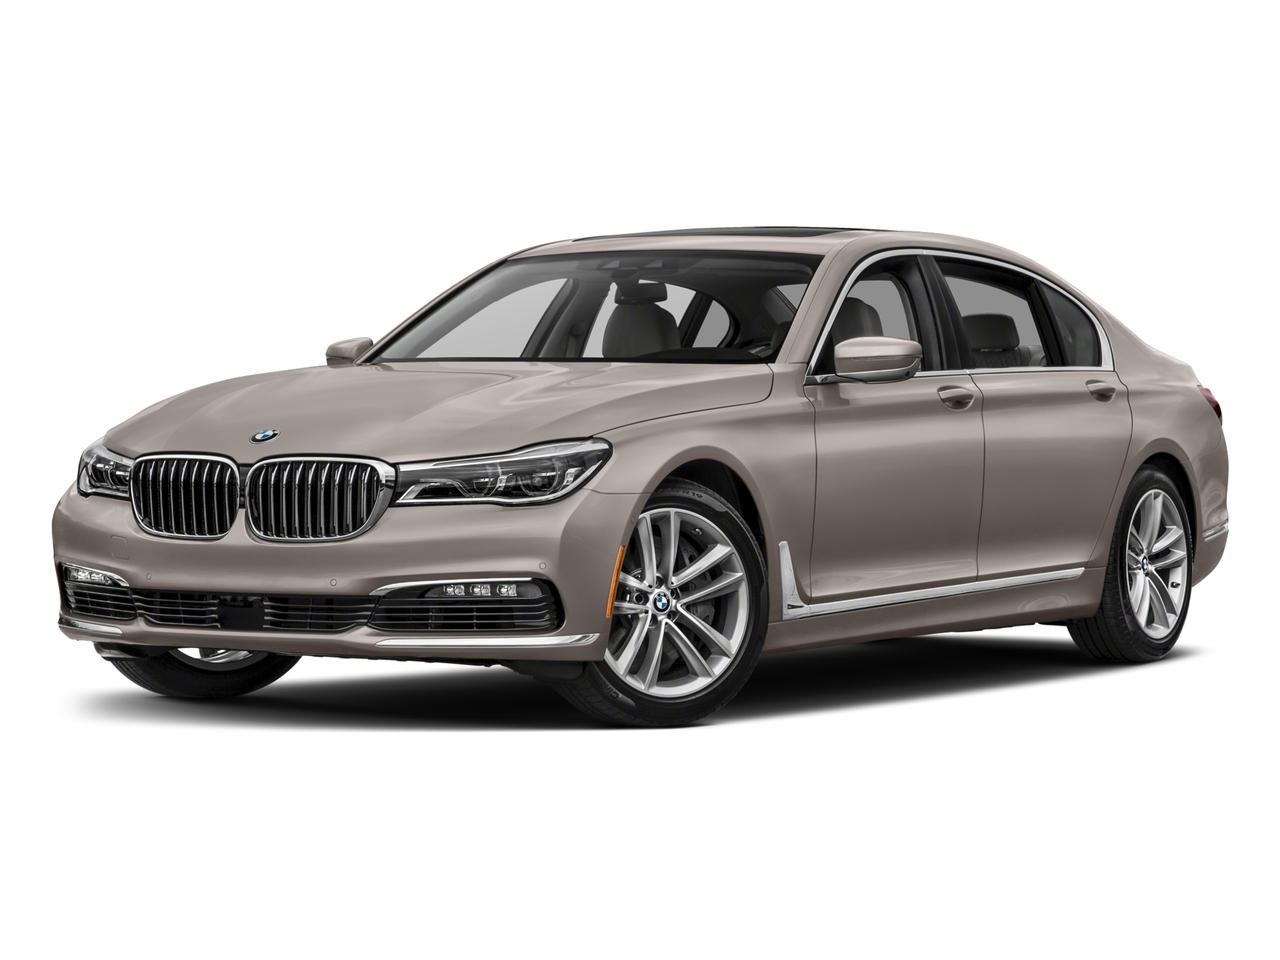 2018 BMW 750i xDrive Vehicle Photo in Grapevine, TX 76051